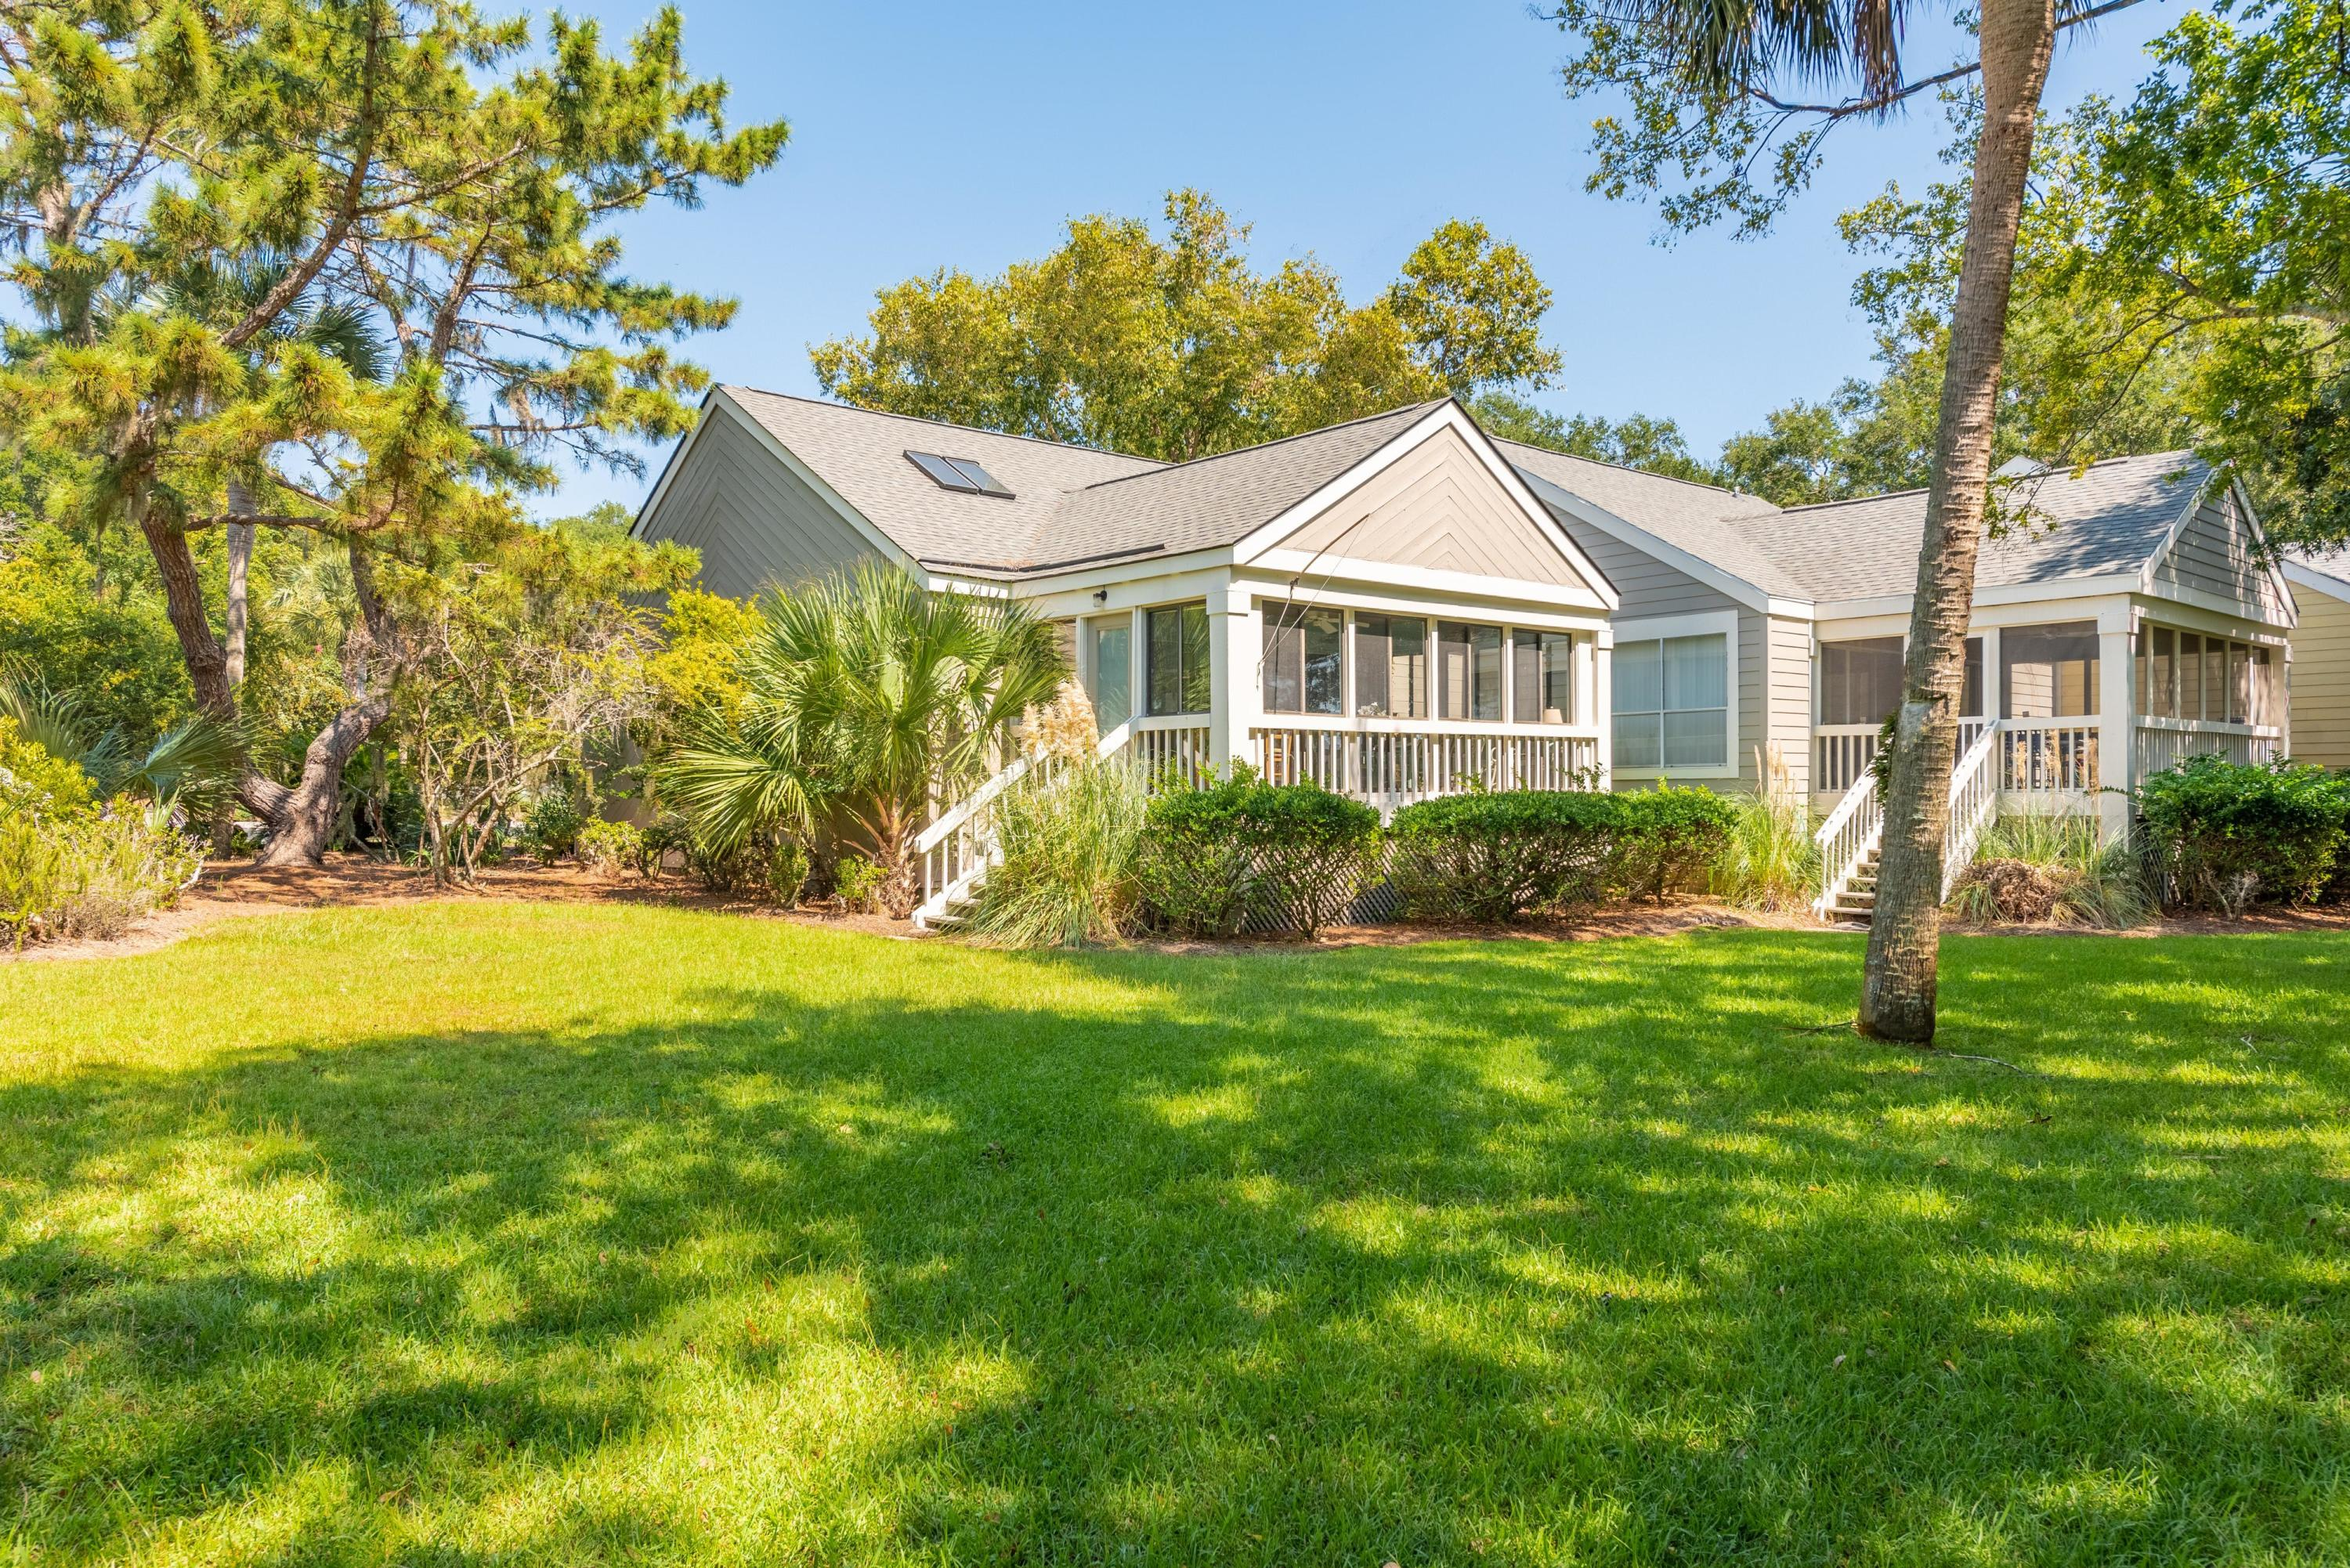 Golf Shore Villas Homes For Sale - 451 Double Eagle Trace, Seabrook Island, SC - 1